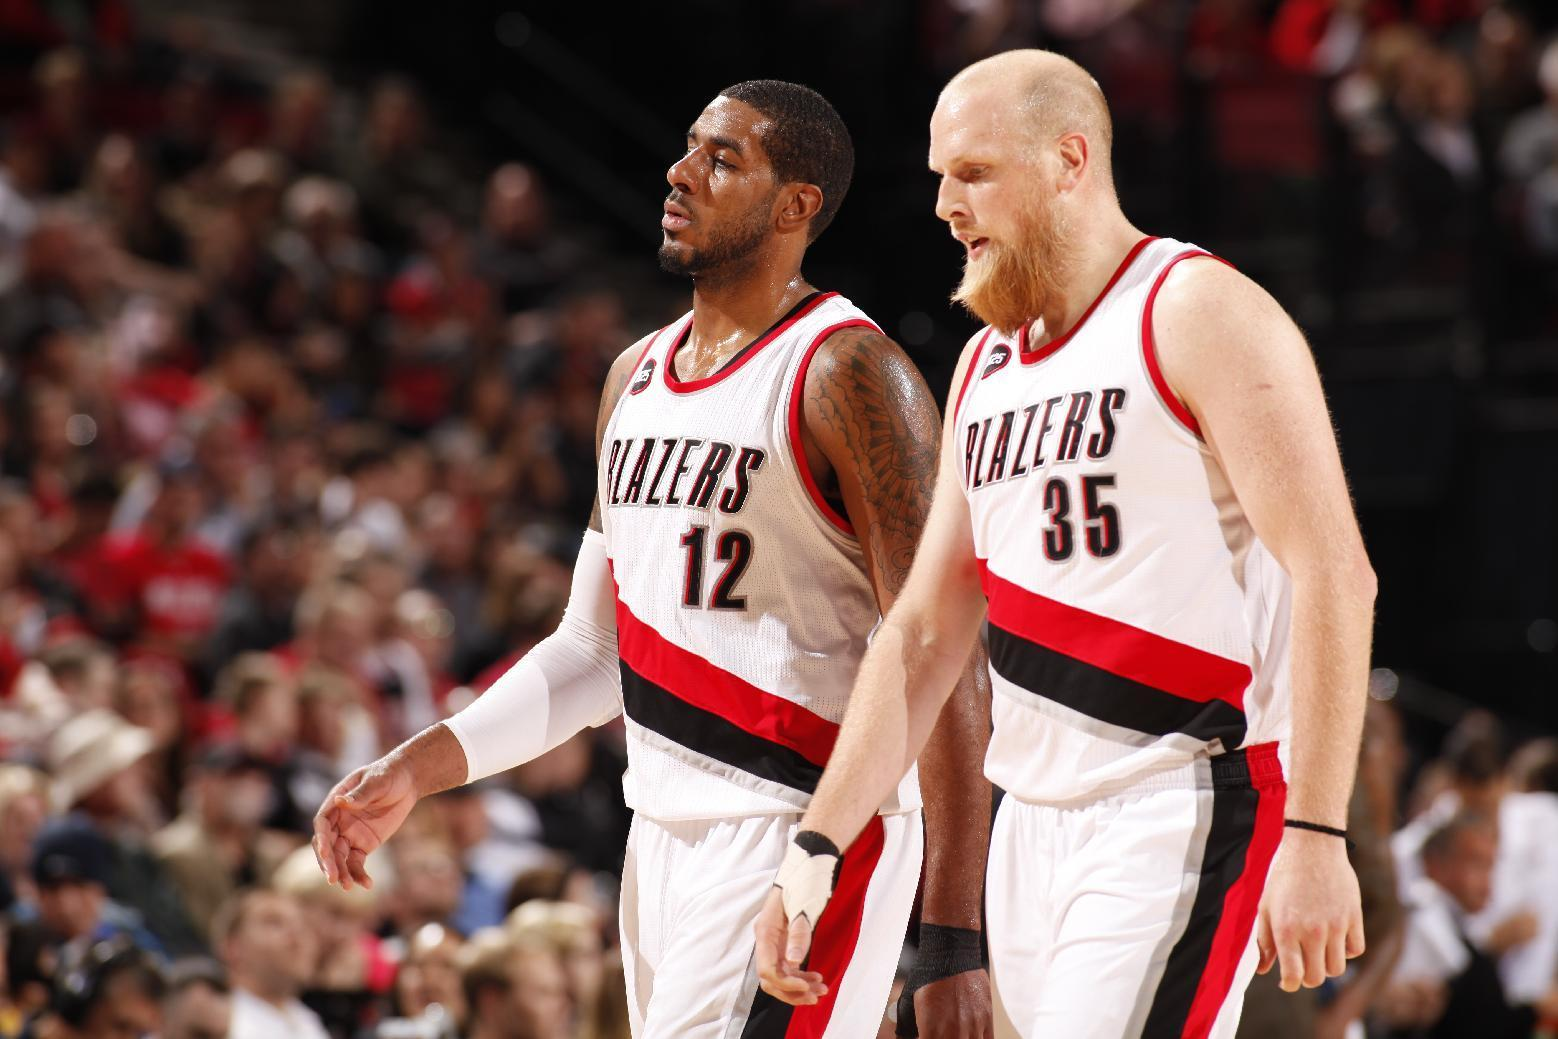 Trail Blazers beat Nuggets, move closer to division title